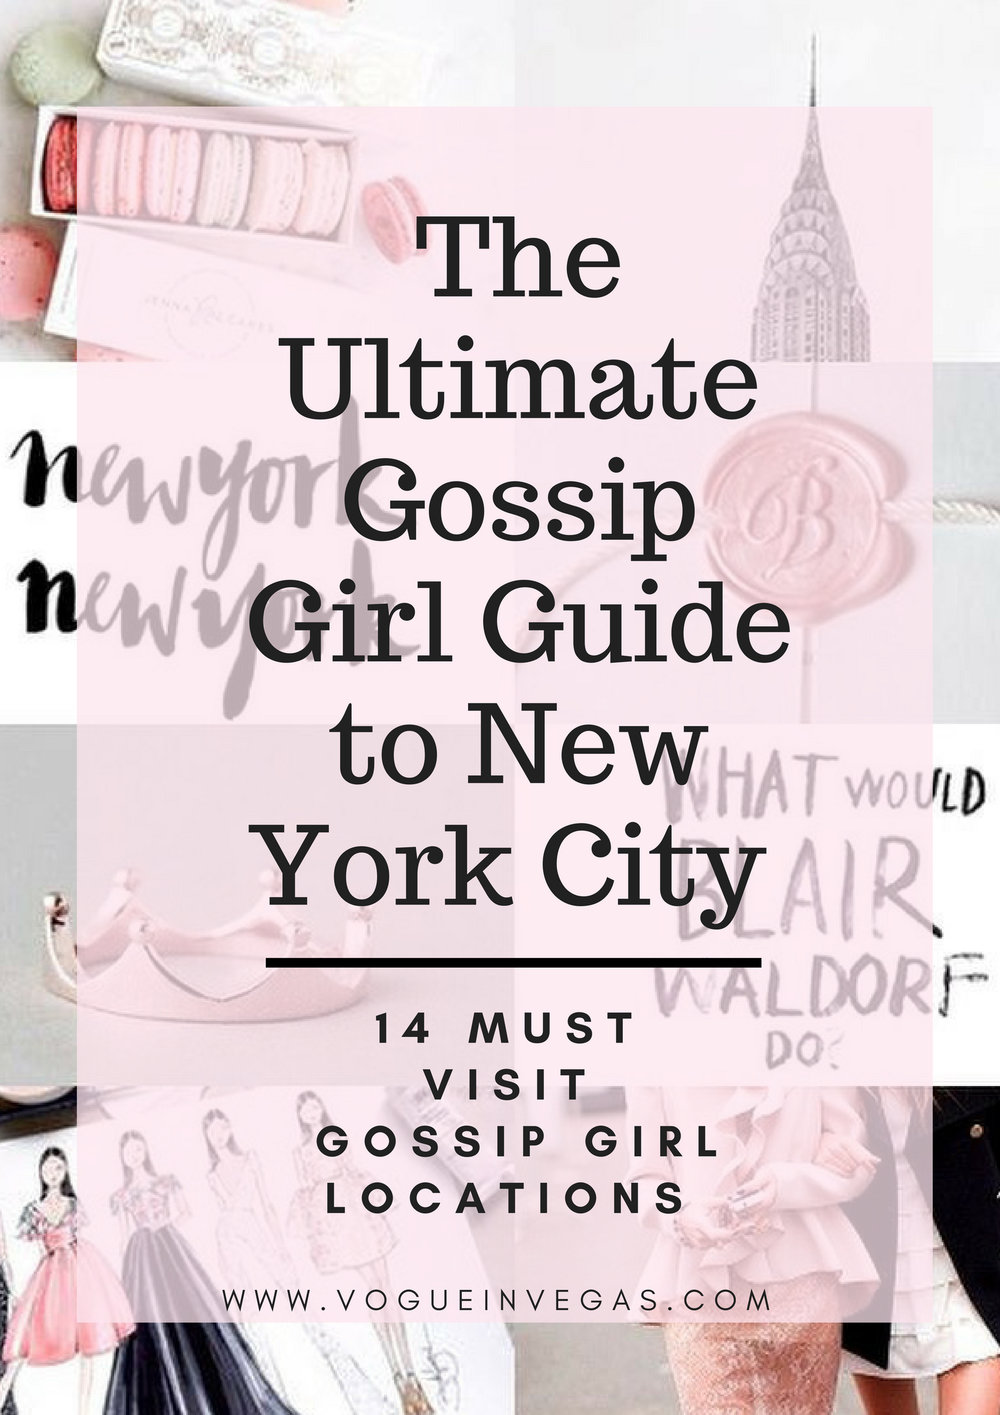 The Ultimate Gossip Girl Guide to New York City.jpg